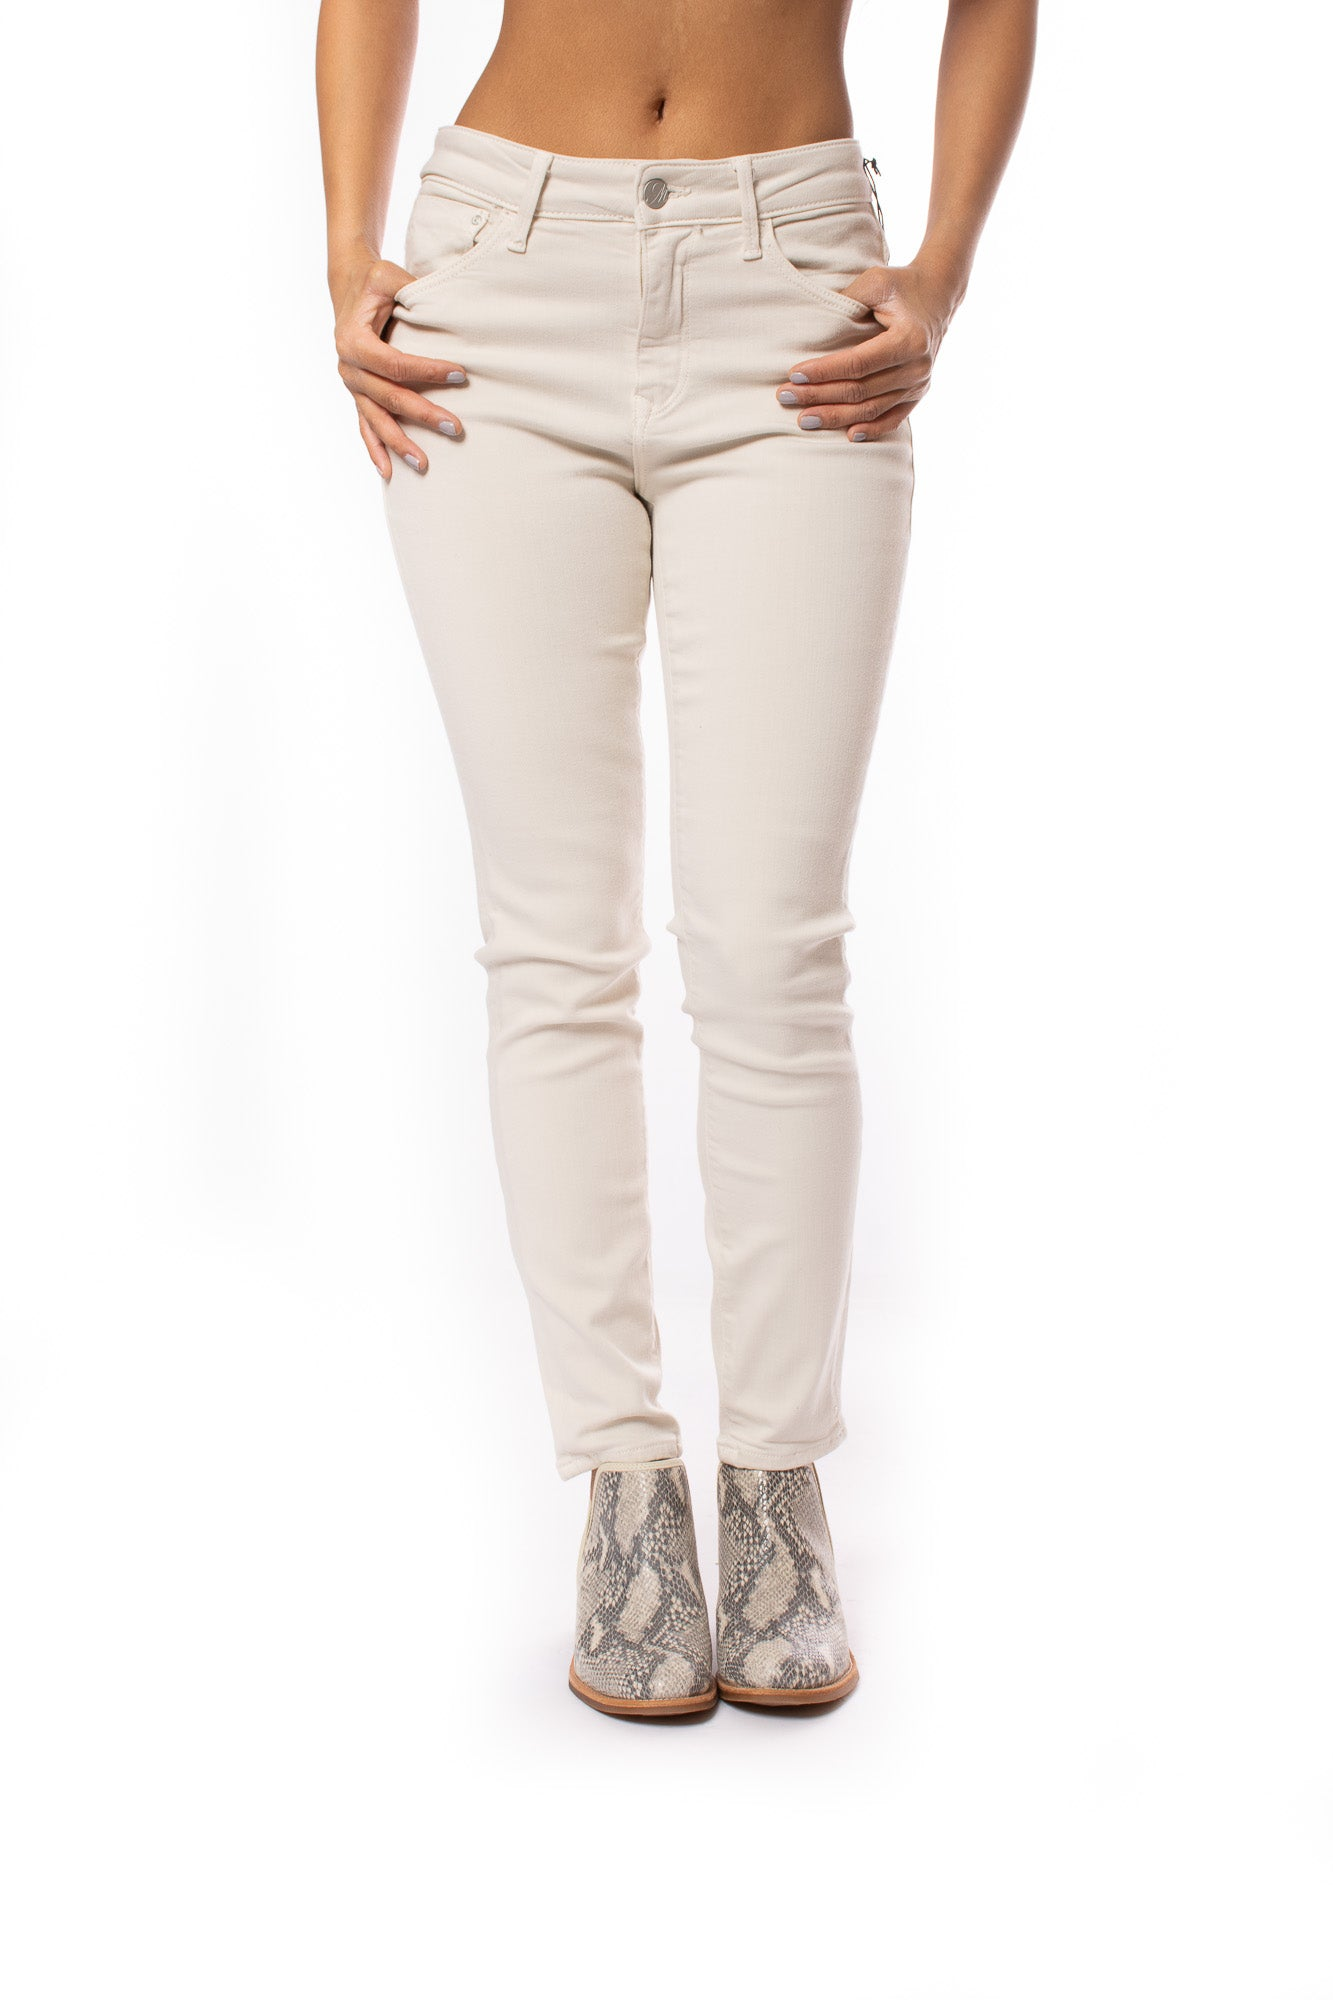 Mavi Jeans - Tess Moonbeam Jeans (100328, Moon)